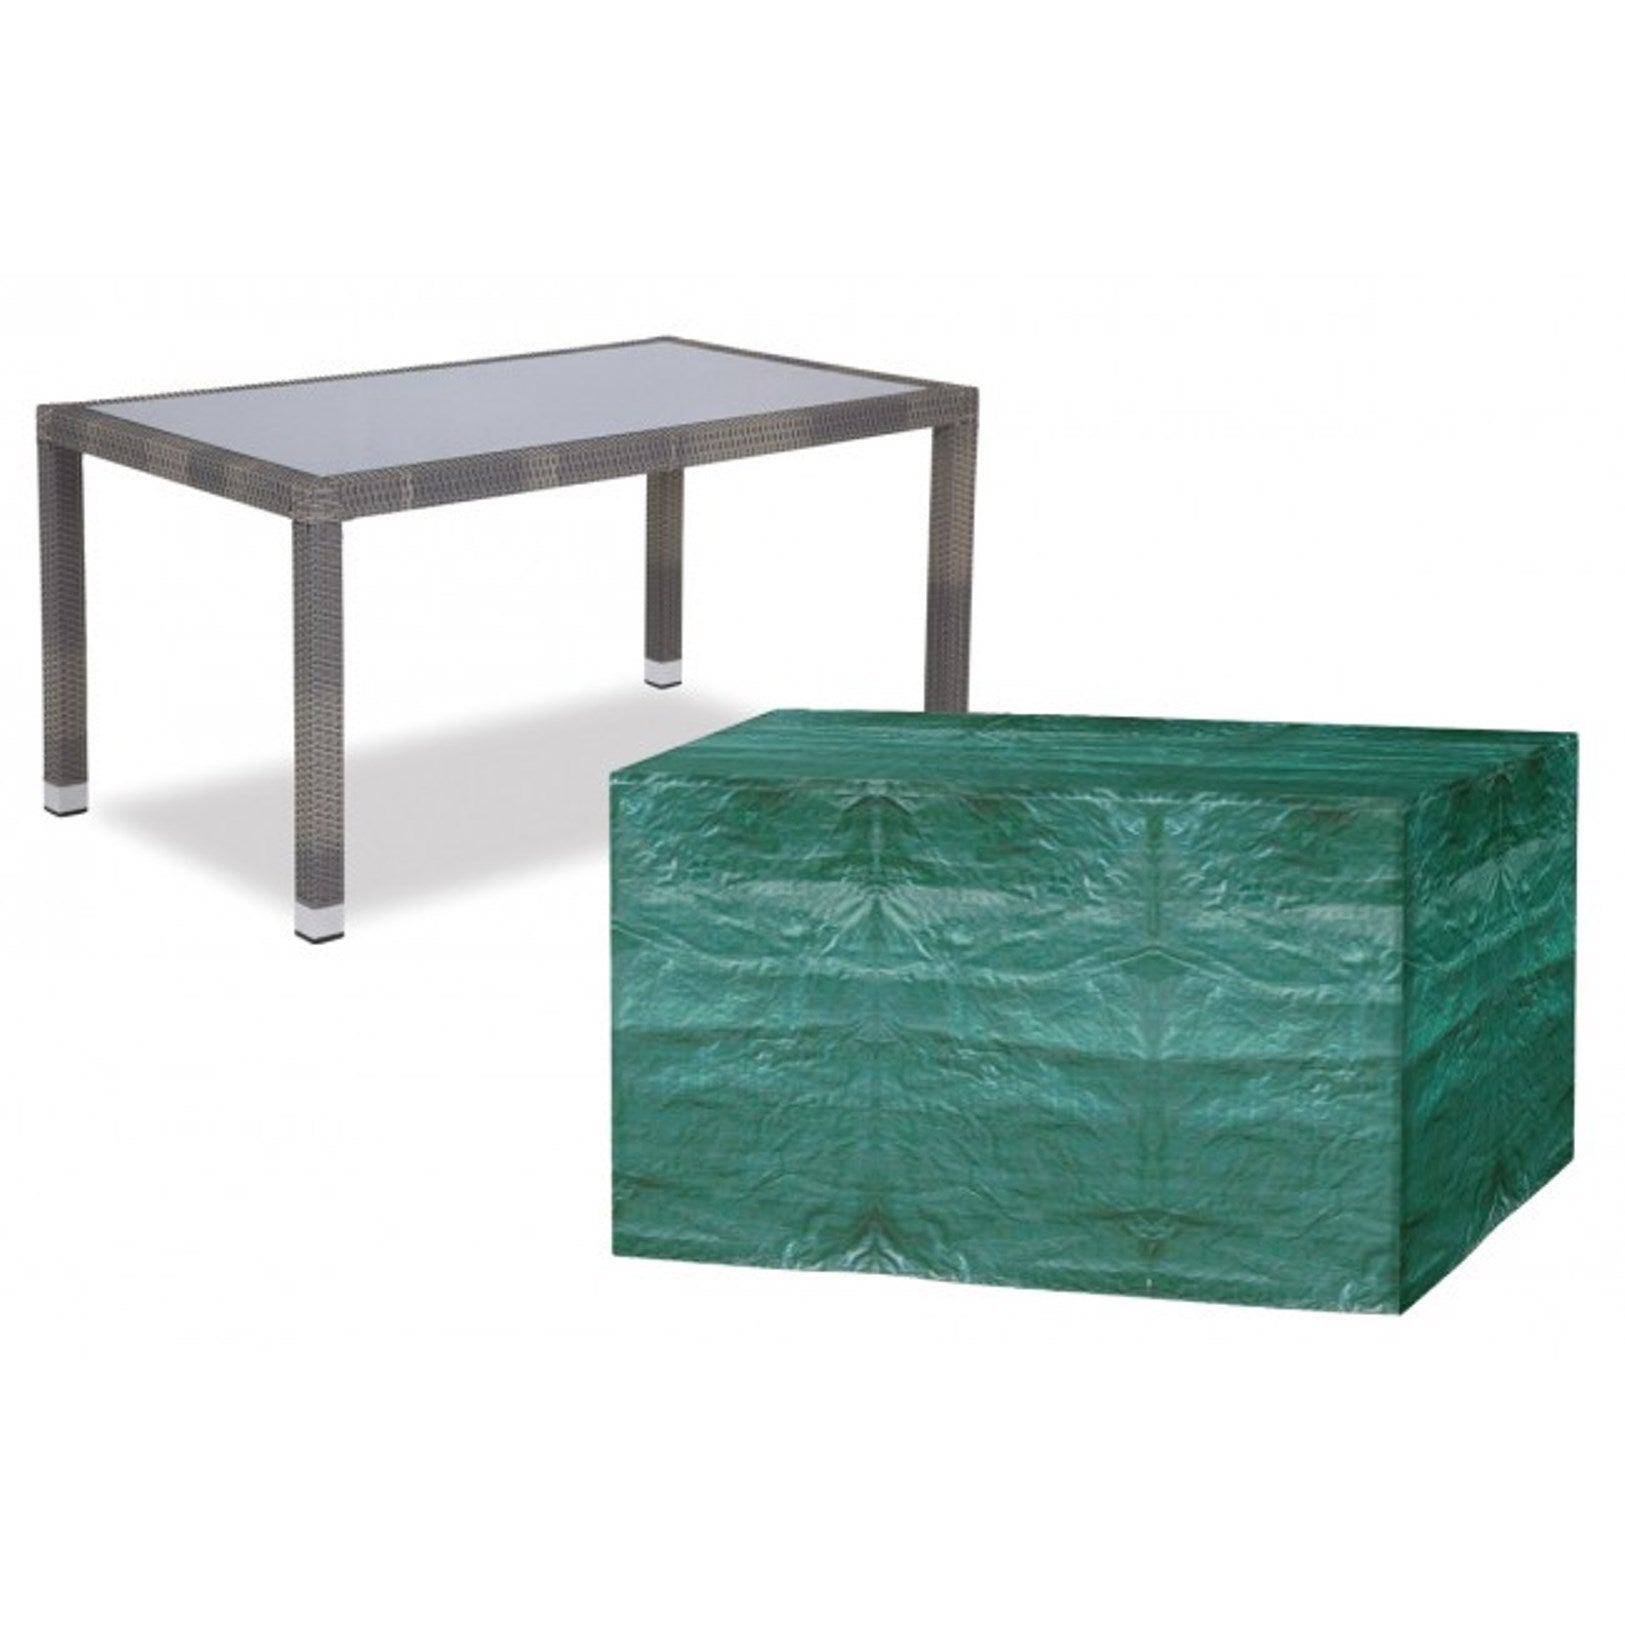 225 & 4 Seater Rectangular Table Garden Furniture Cover (W1172)